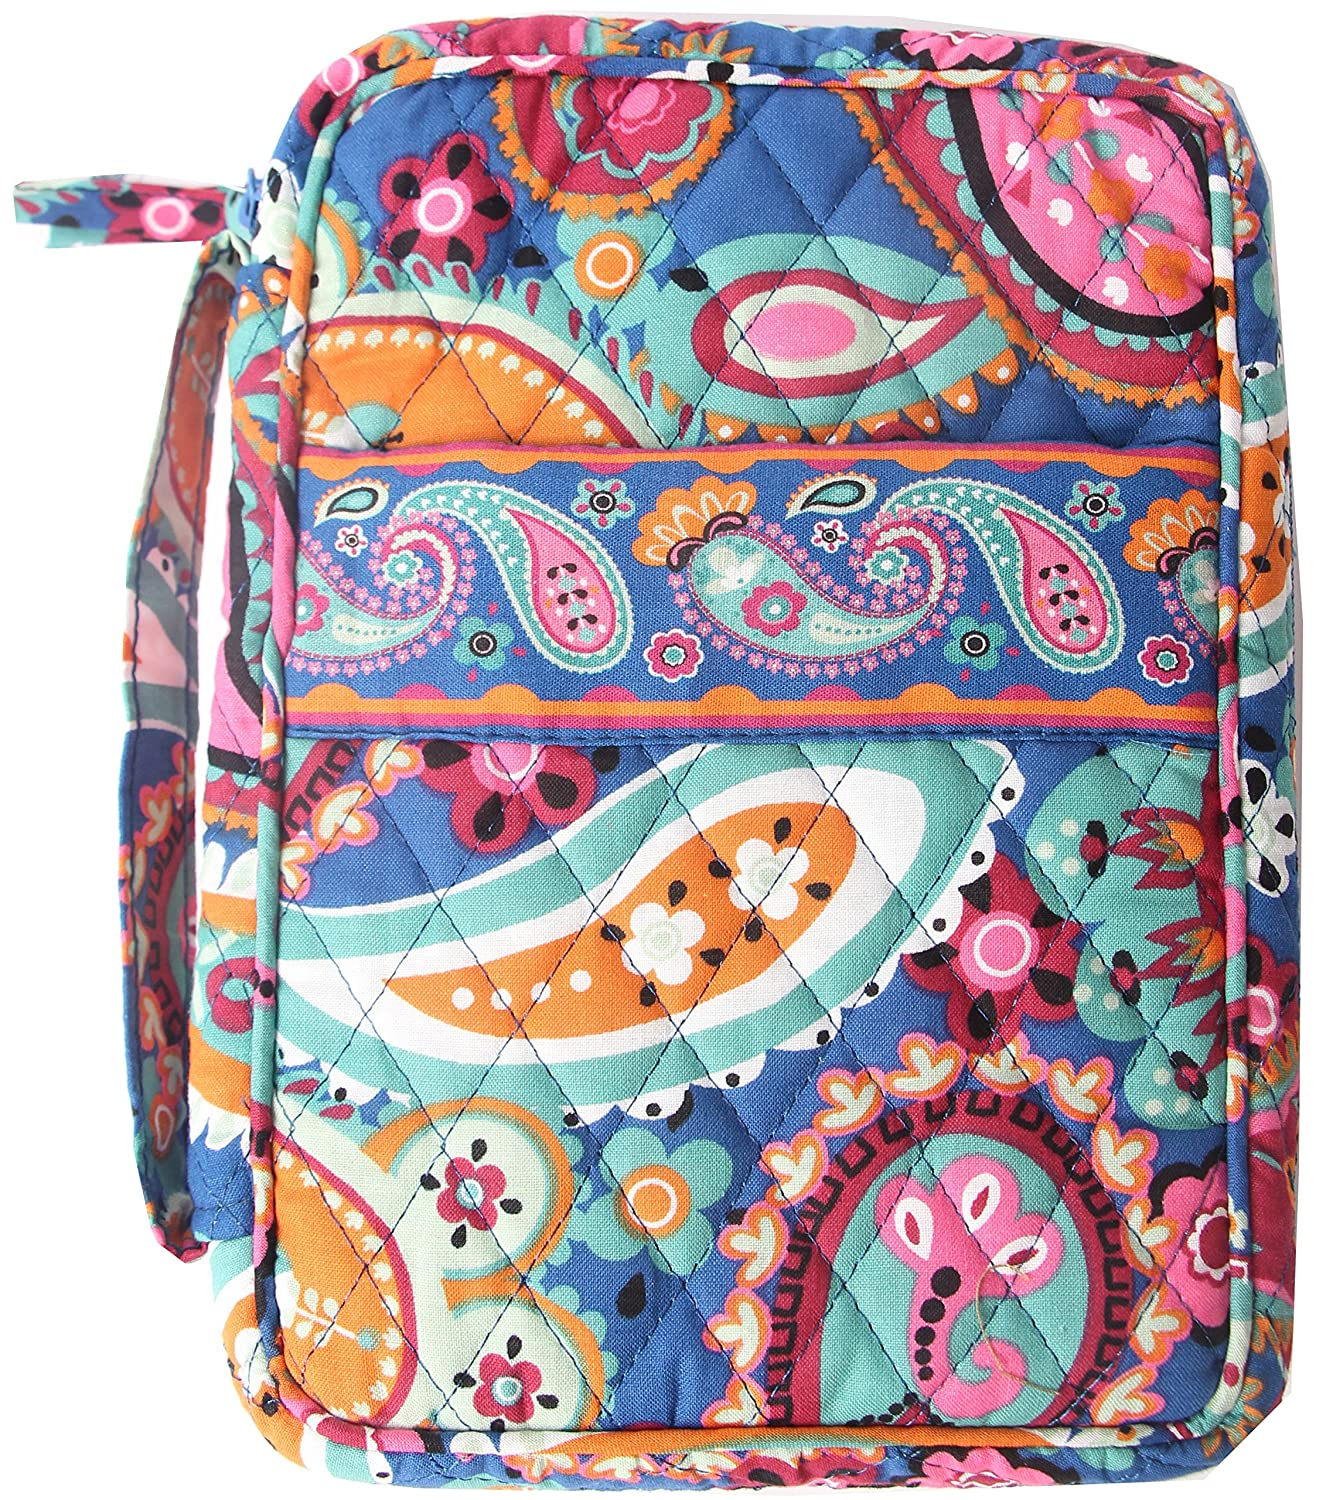 DIWI Large Sizes 10 X 7 X 2.75 inches Bible Cover Quilted Good Book Cover Quilted Cotton Fabric Bible Cover Zip Closer Slip Pocket Pink Blue (L, 1804ER Afternoon Garden) M7